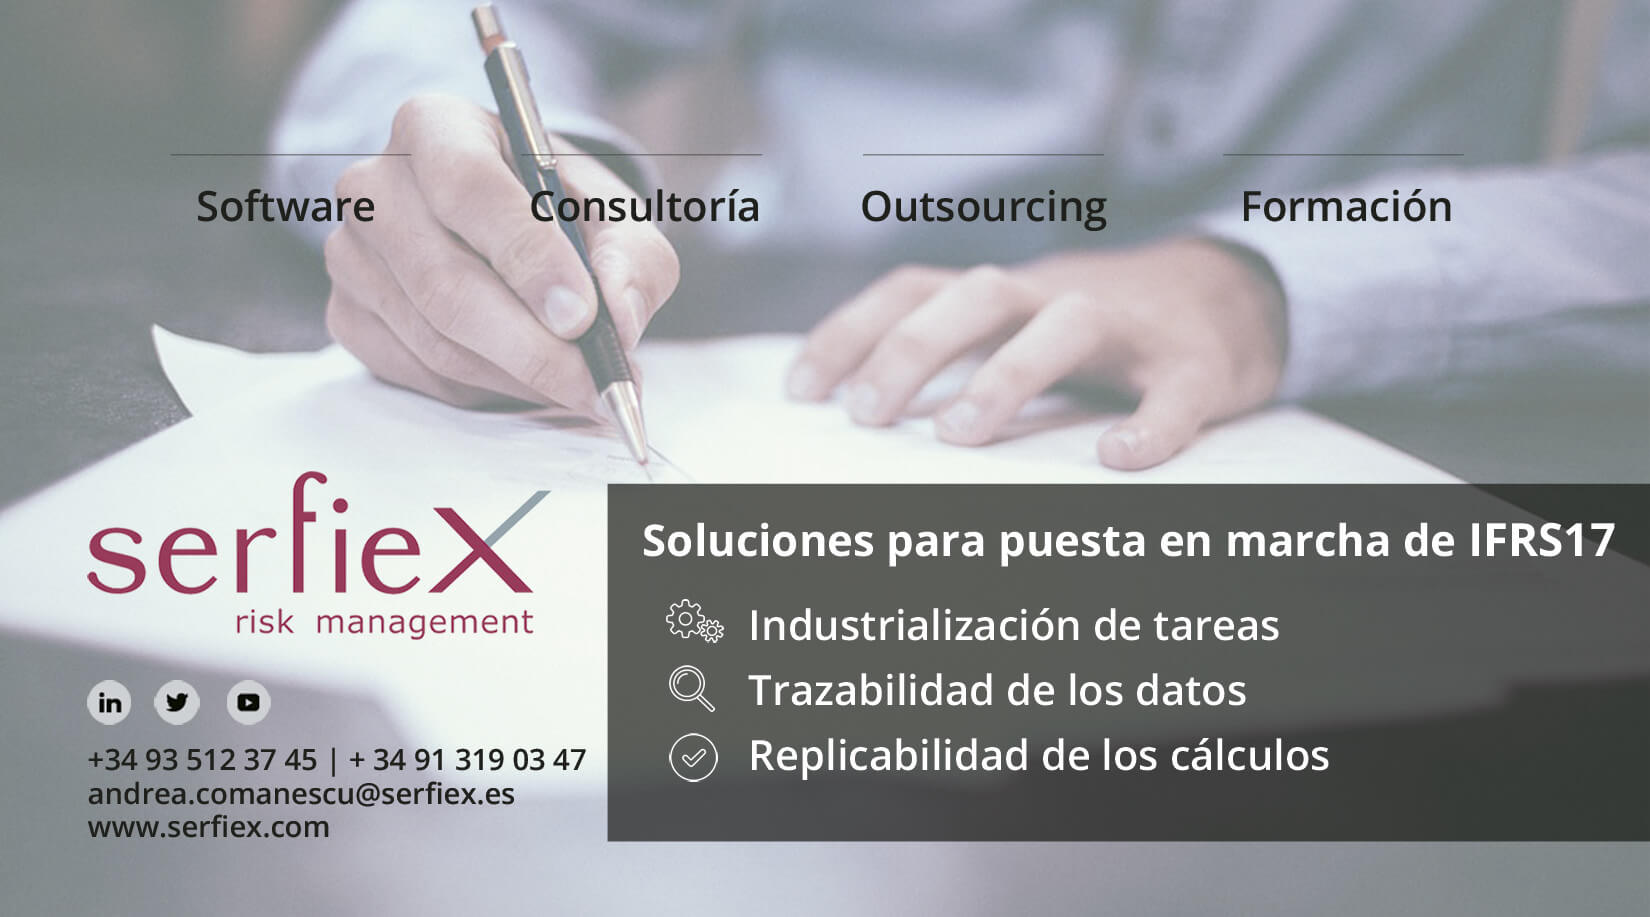 Serfiex risk management